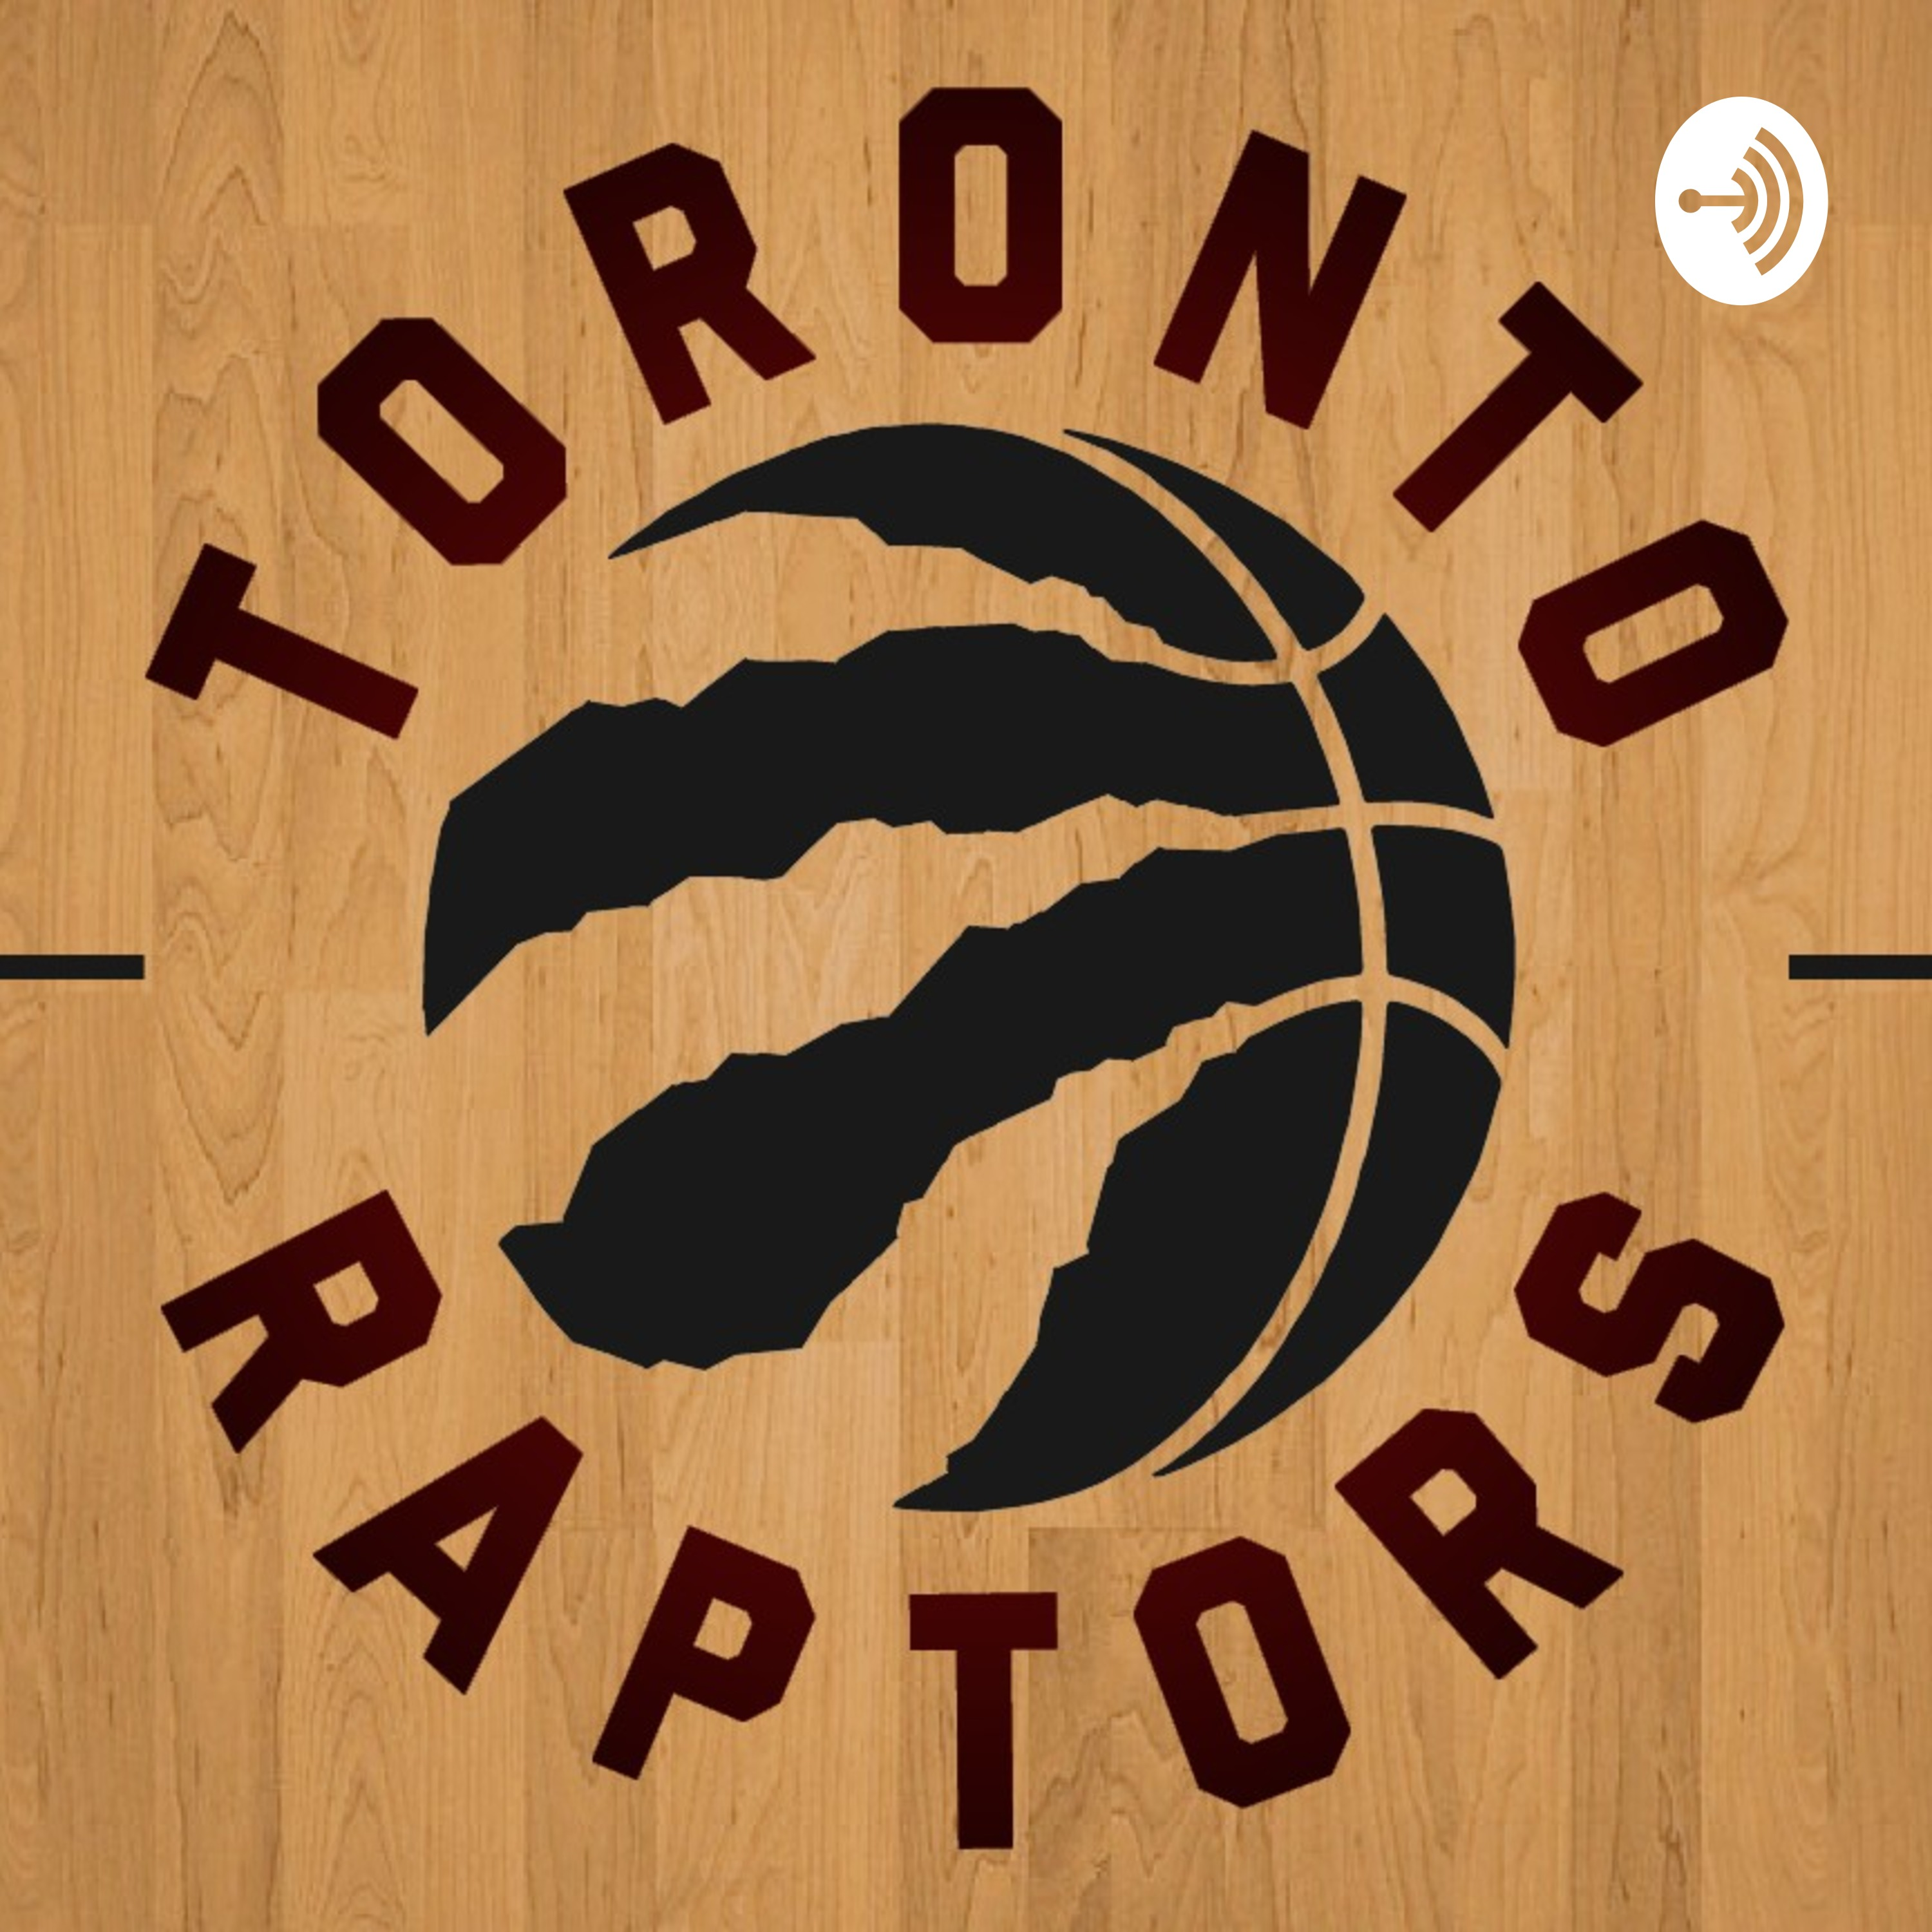 Episode 29 - Which NBA team won free agency?